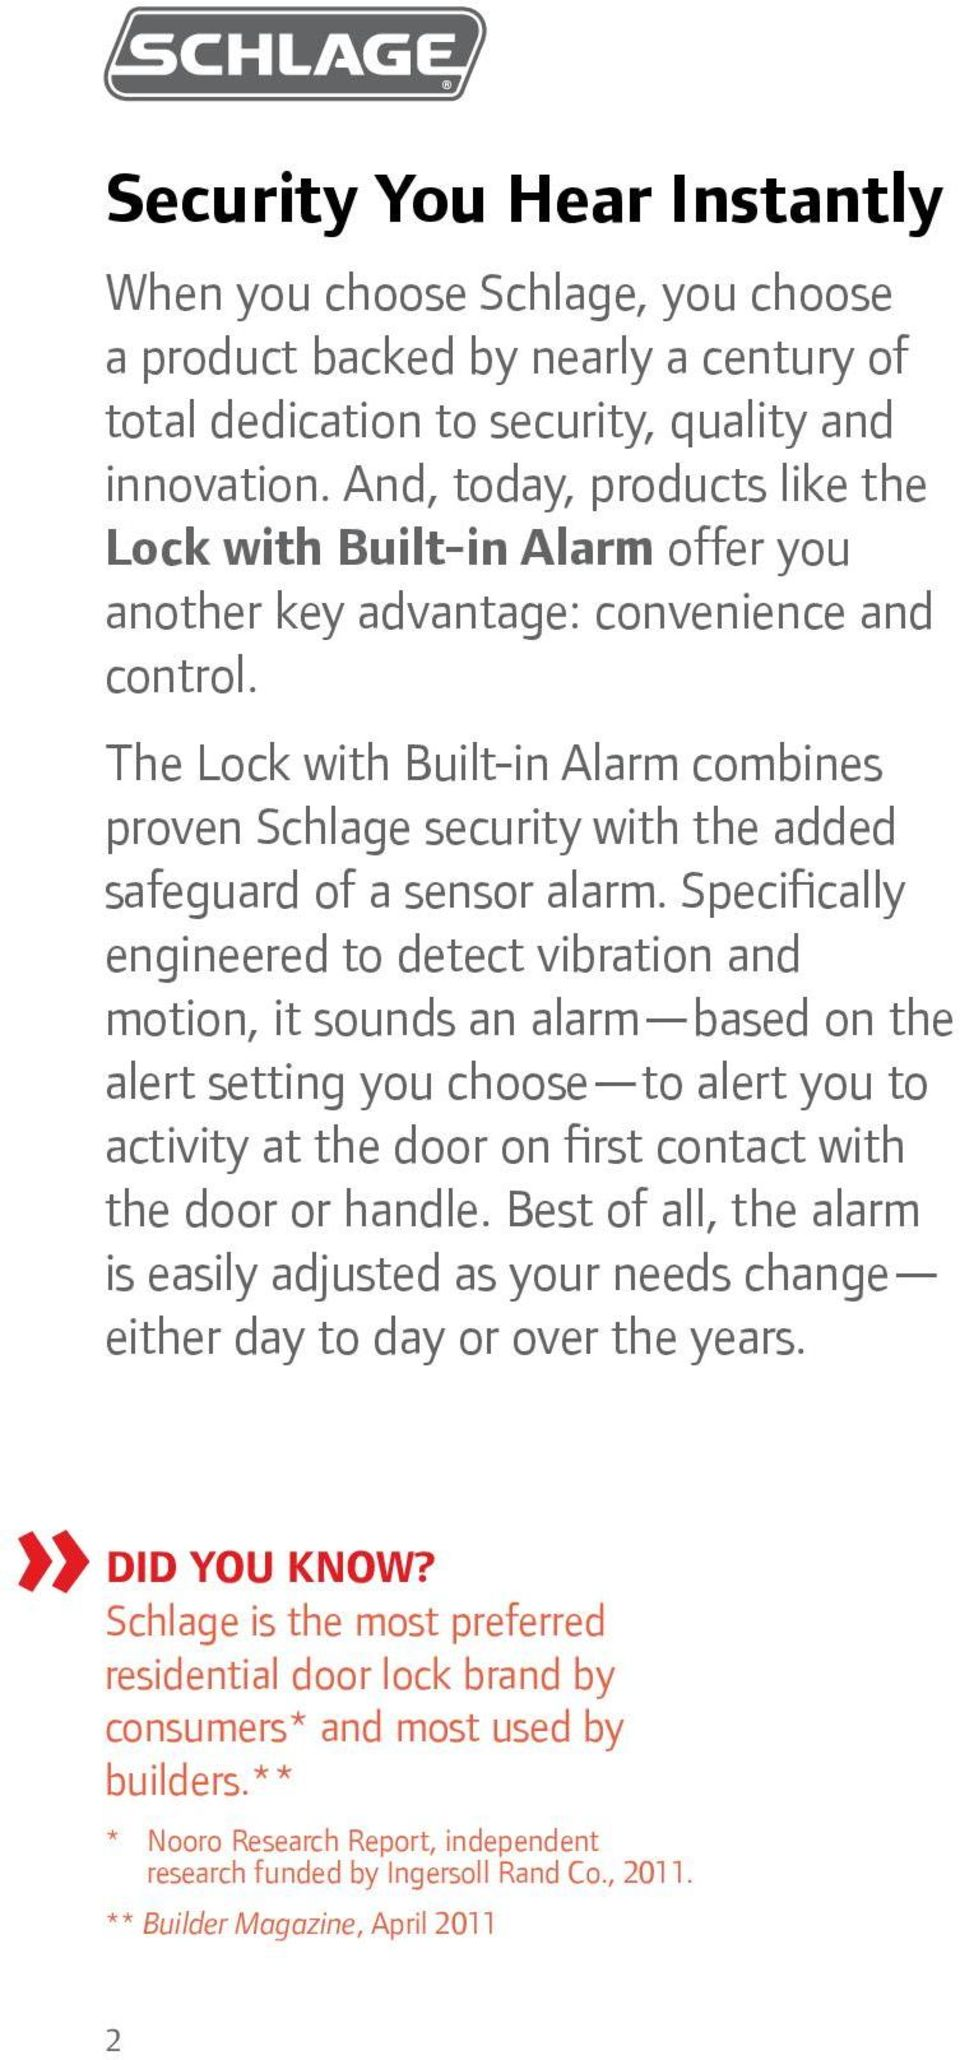 The Lock with Built-in Alarm combines proven Schlage security with the added safeguard of a sensor alarm.